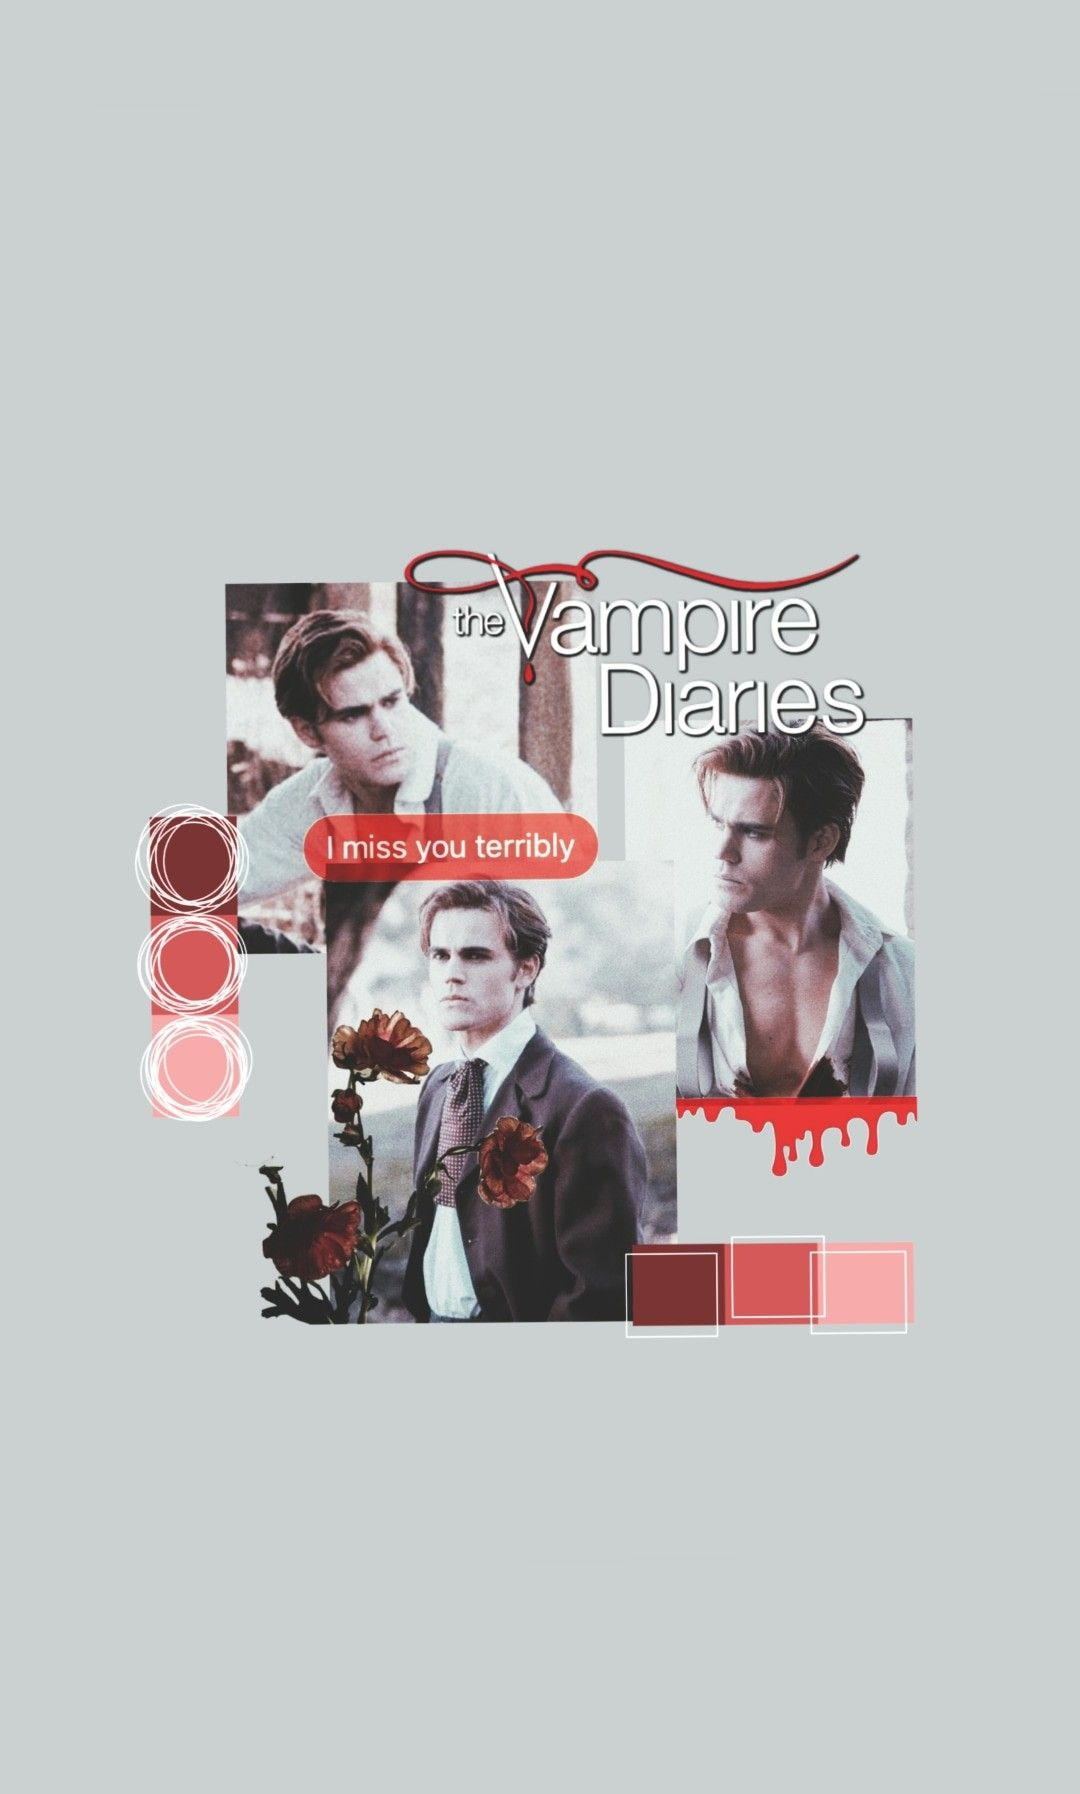 The Vampire Diaries Aesthetic Wallpaper Damon Salvatore Vampire Diaries Paul Wesley Vampire Diaries Vampire Diaries Wallpaper